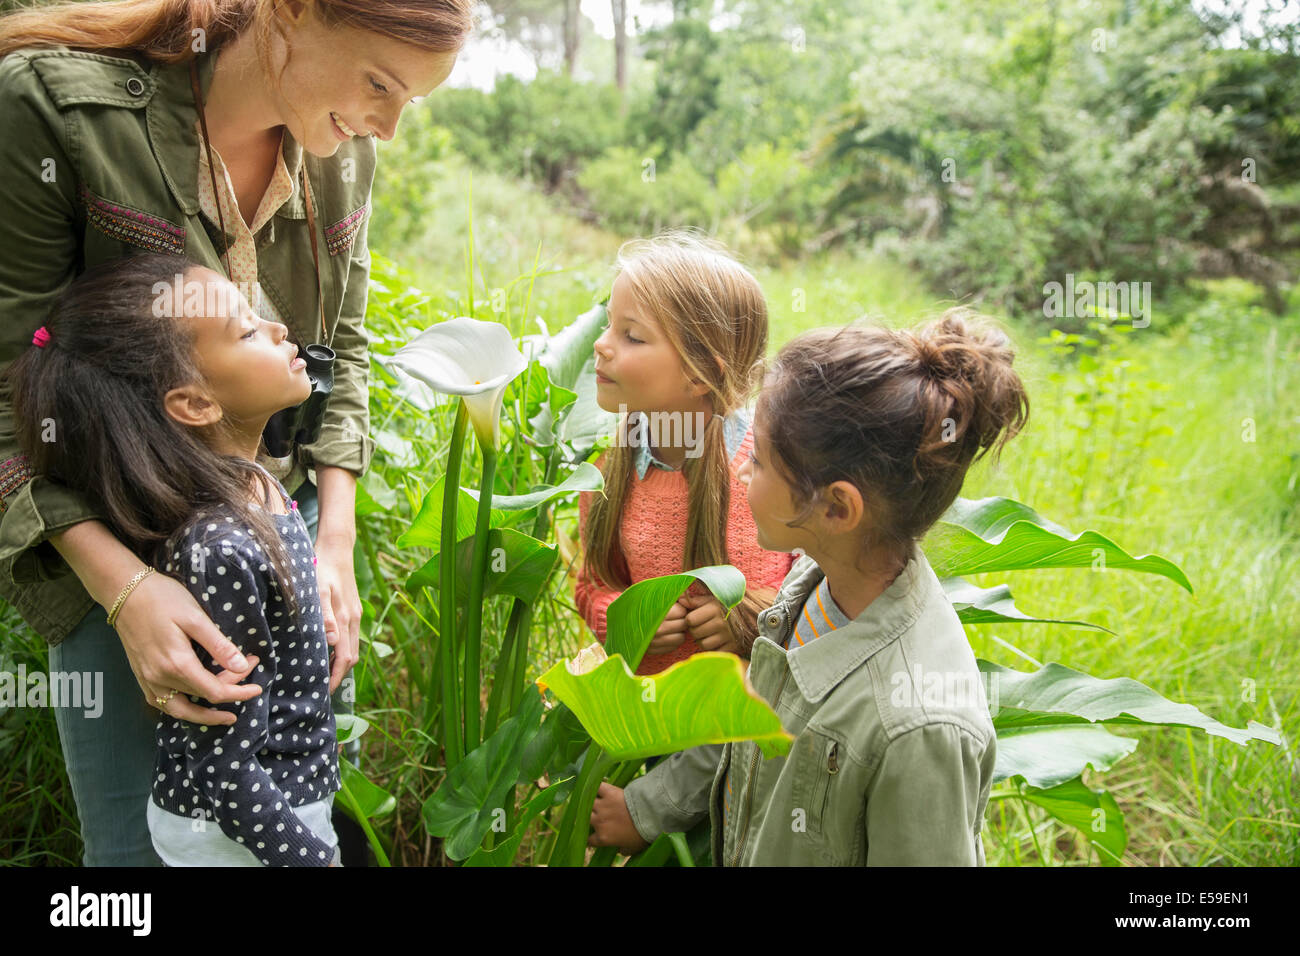 Students and teacher examining plants outdoors - Stock Image